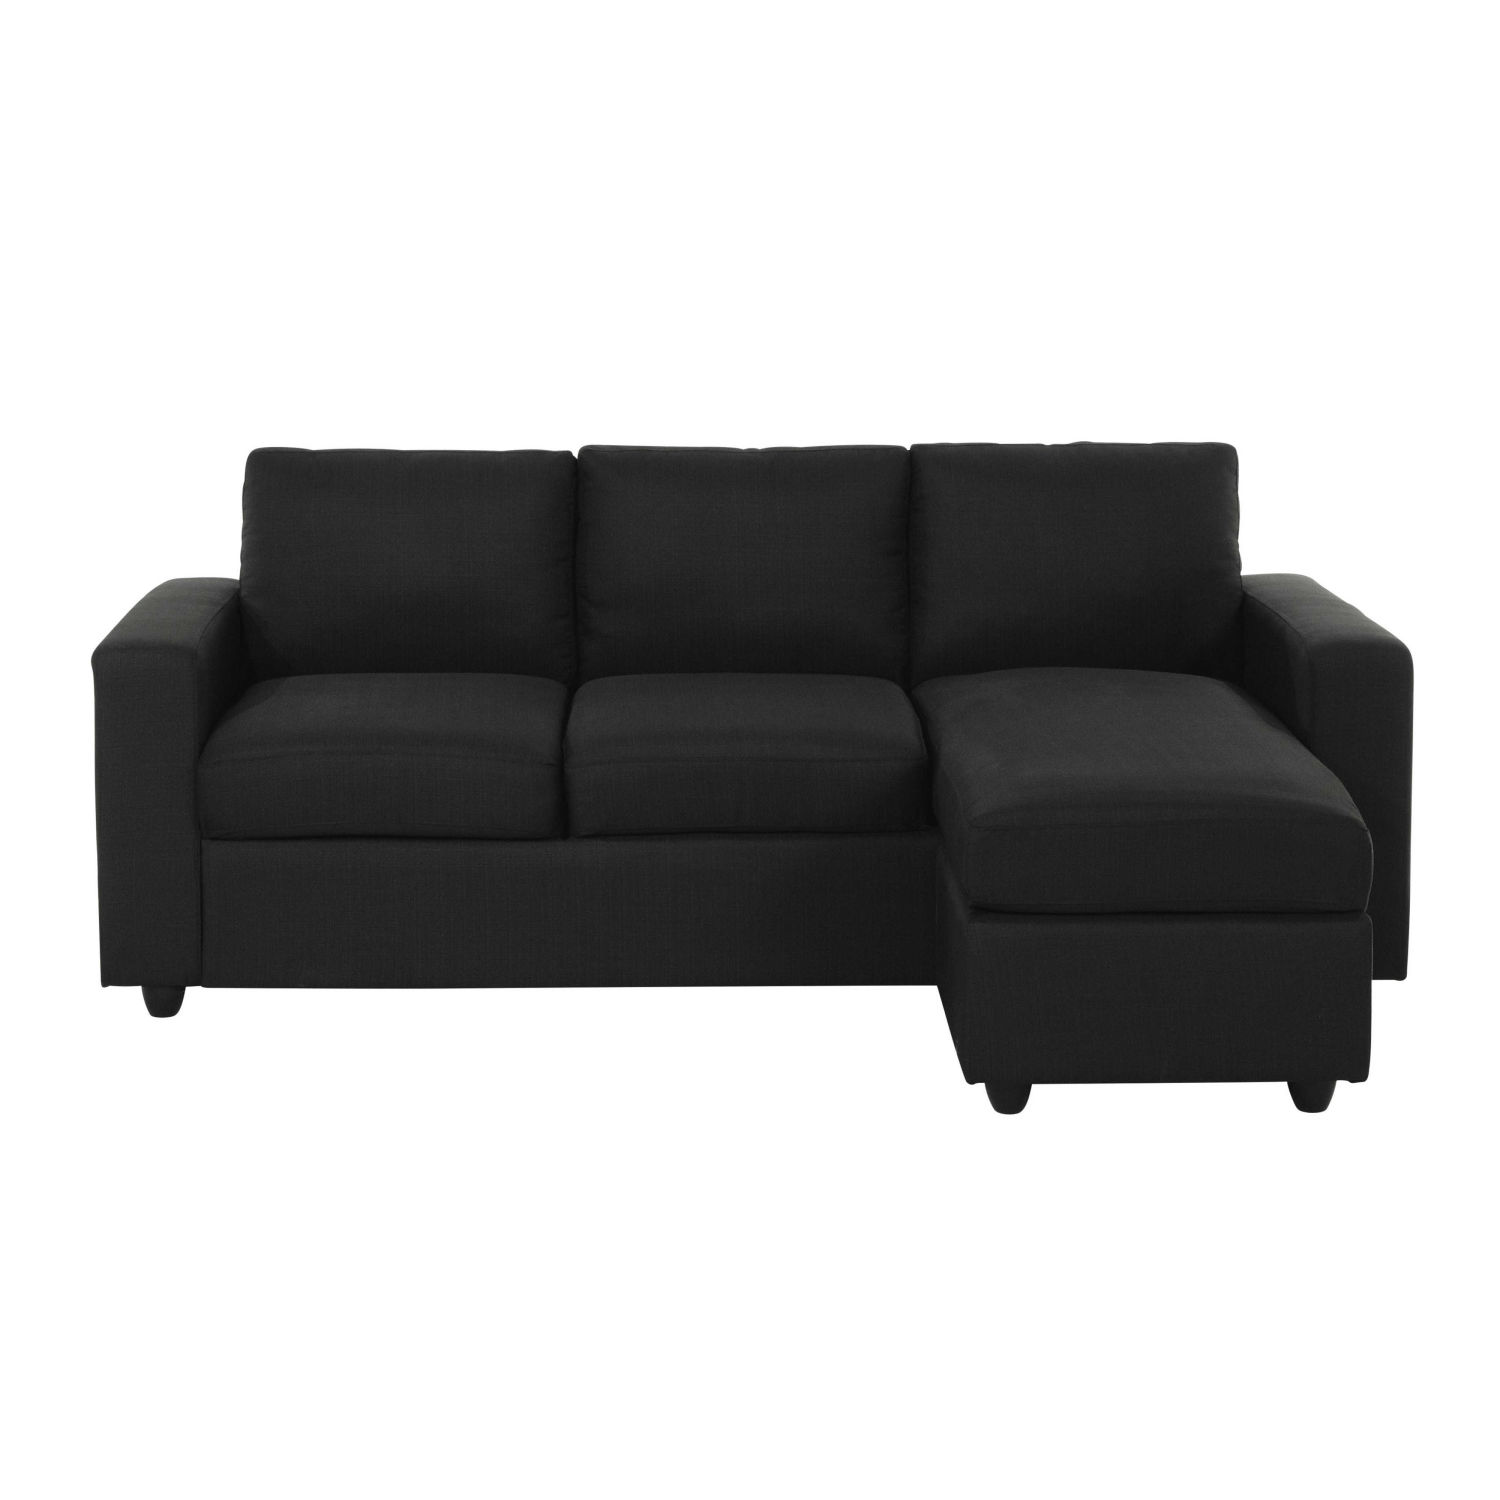 charcoal grey leather corner sofa what are the dimensions of a queen size sleeper modular 3 seater in maisons du